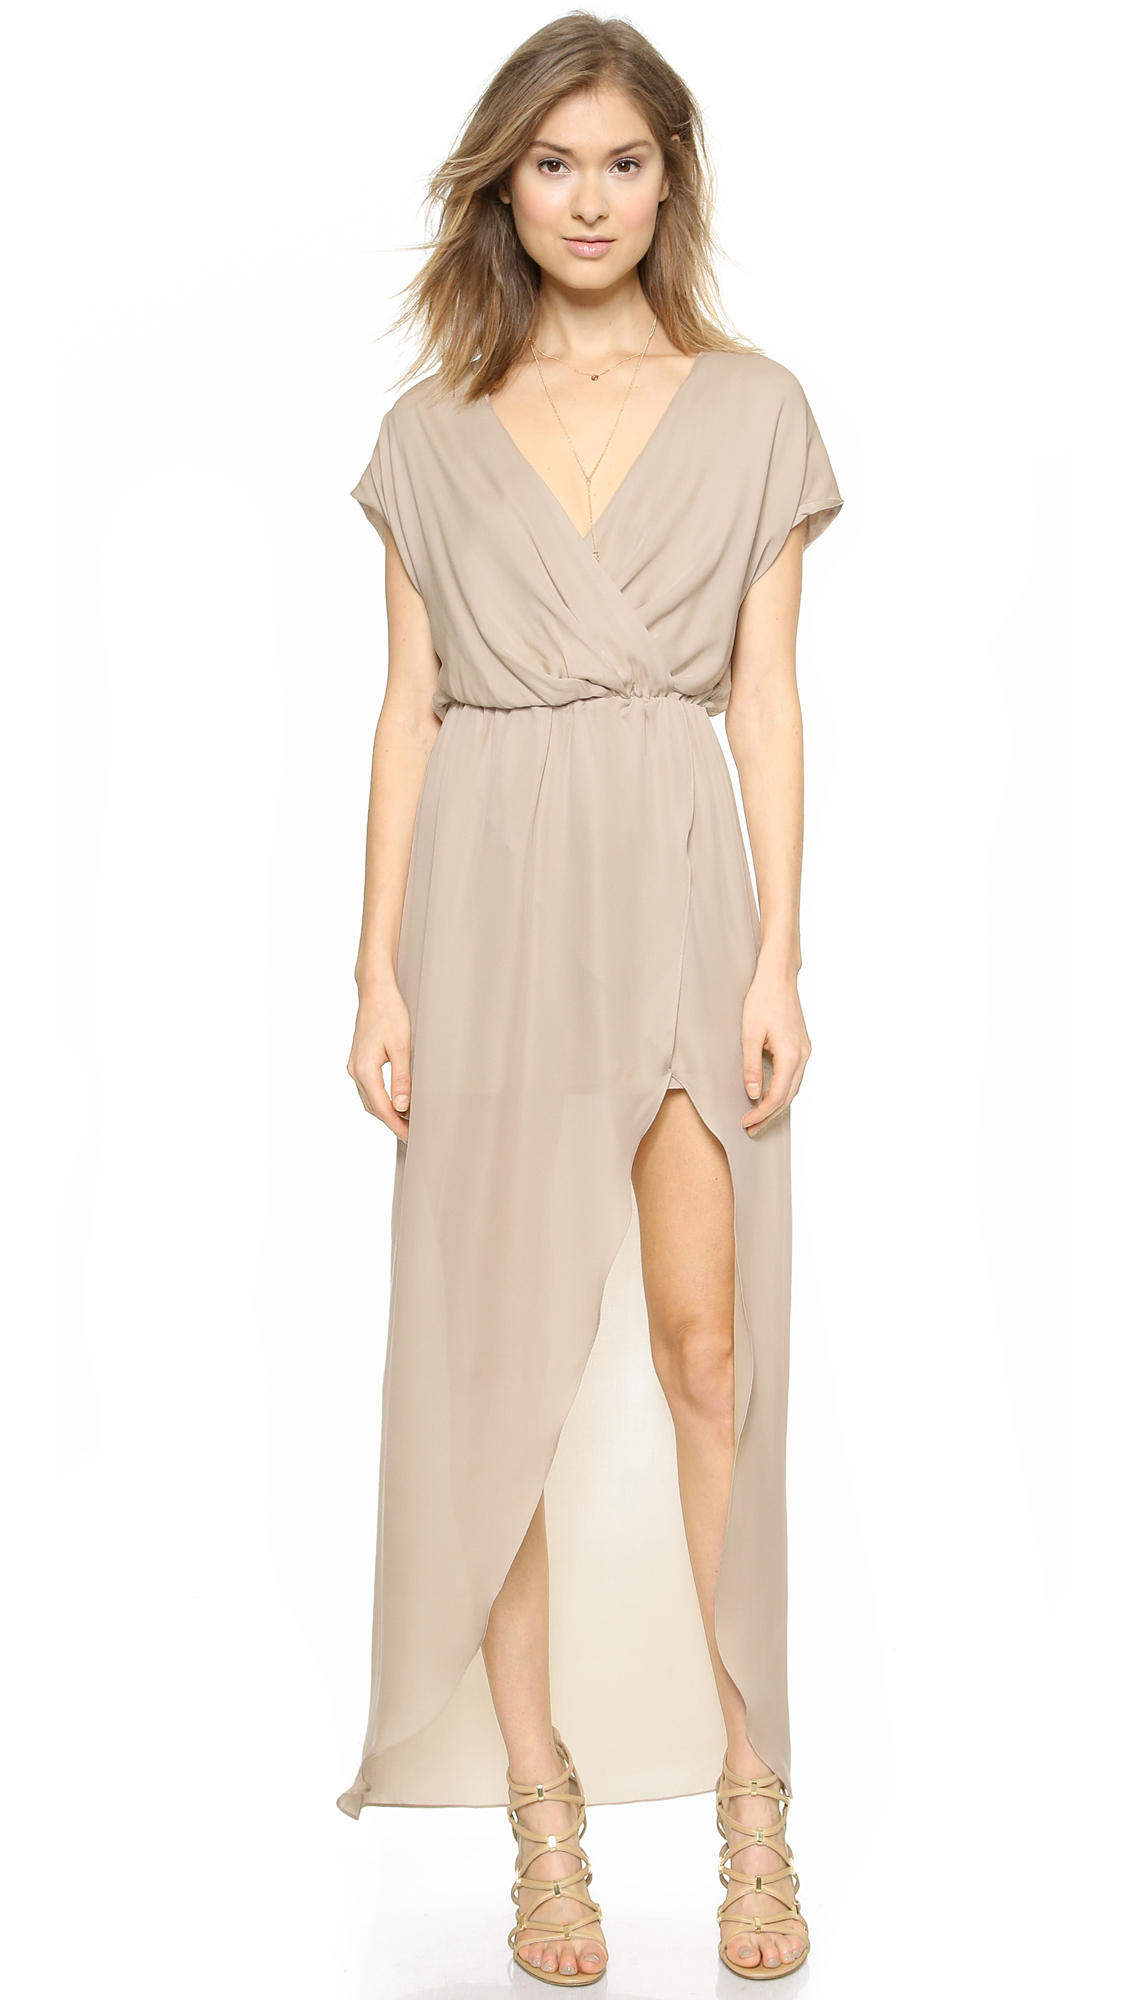 dbbdc944 Rory Beca Plaza Overlap Gown | SHOPBOP